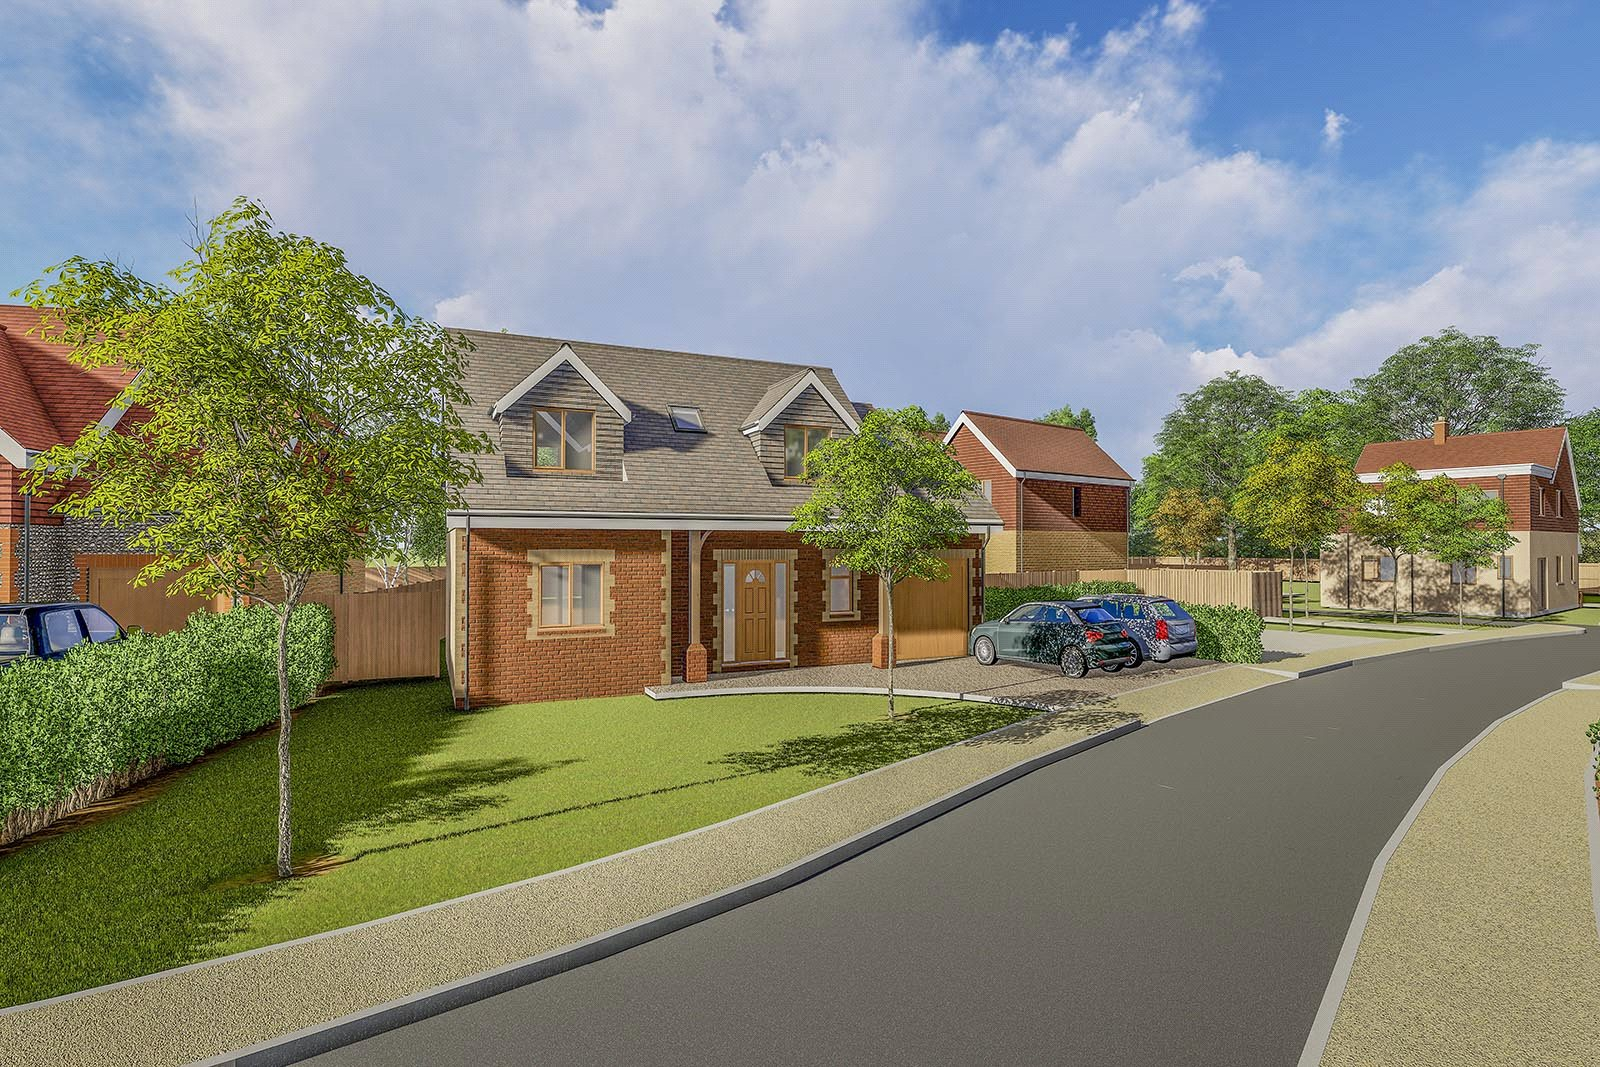 3 bed house for sale in Swallows Gate, Dappers Lane, Angmering 3